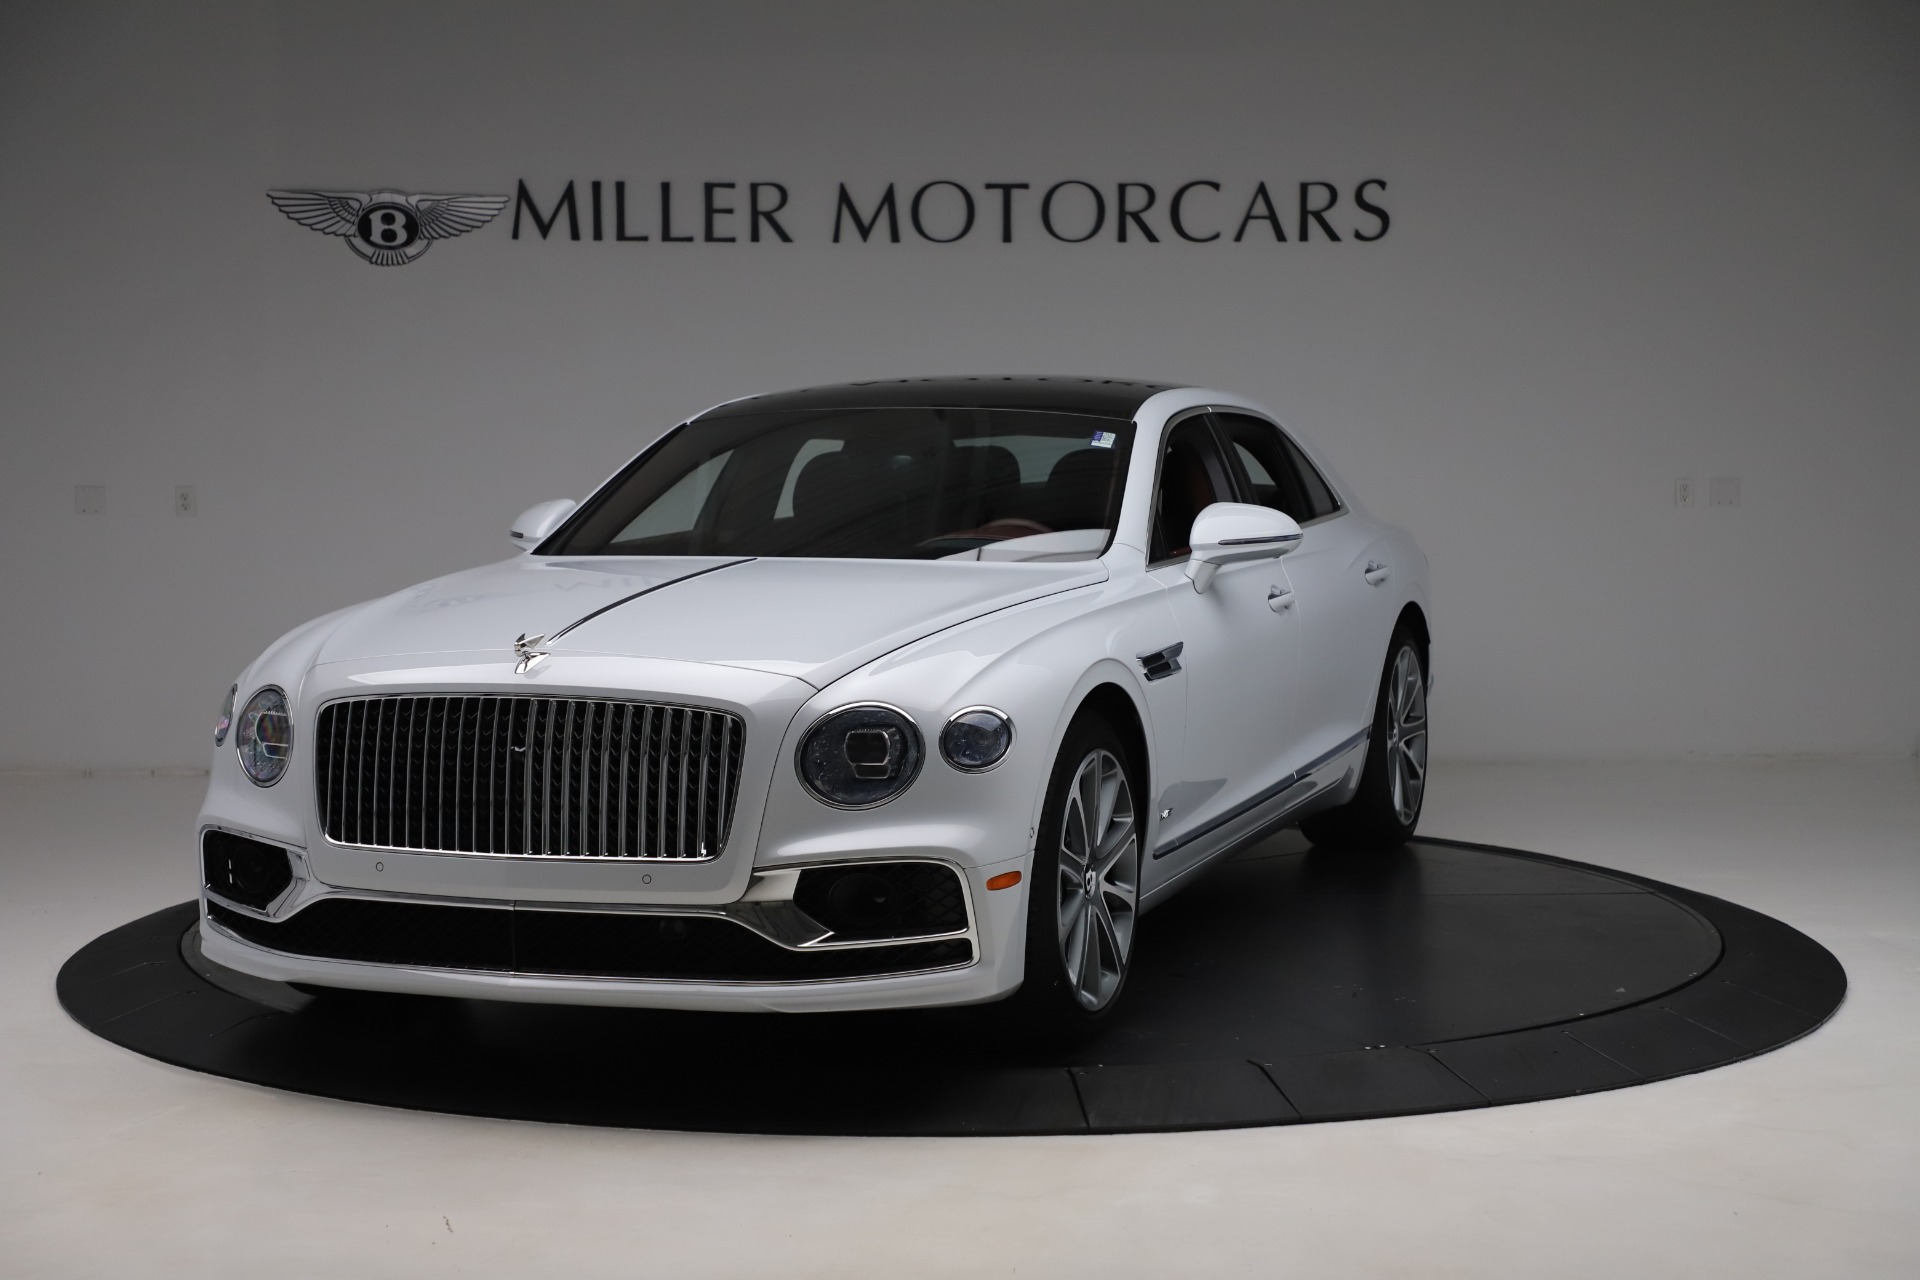 New 2020 Bentley Flying Spur W12 for sale $277,790 at Rolls-Royce Motor Cars Greenwich in Greenwich CT 06830 1